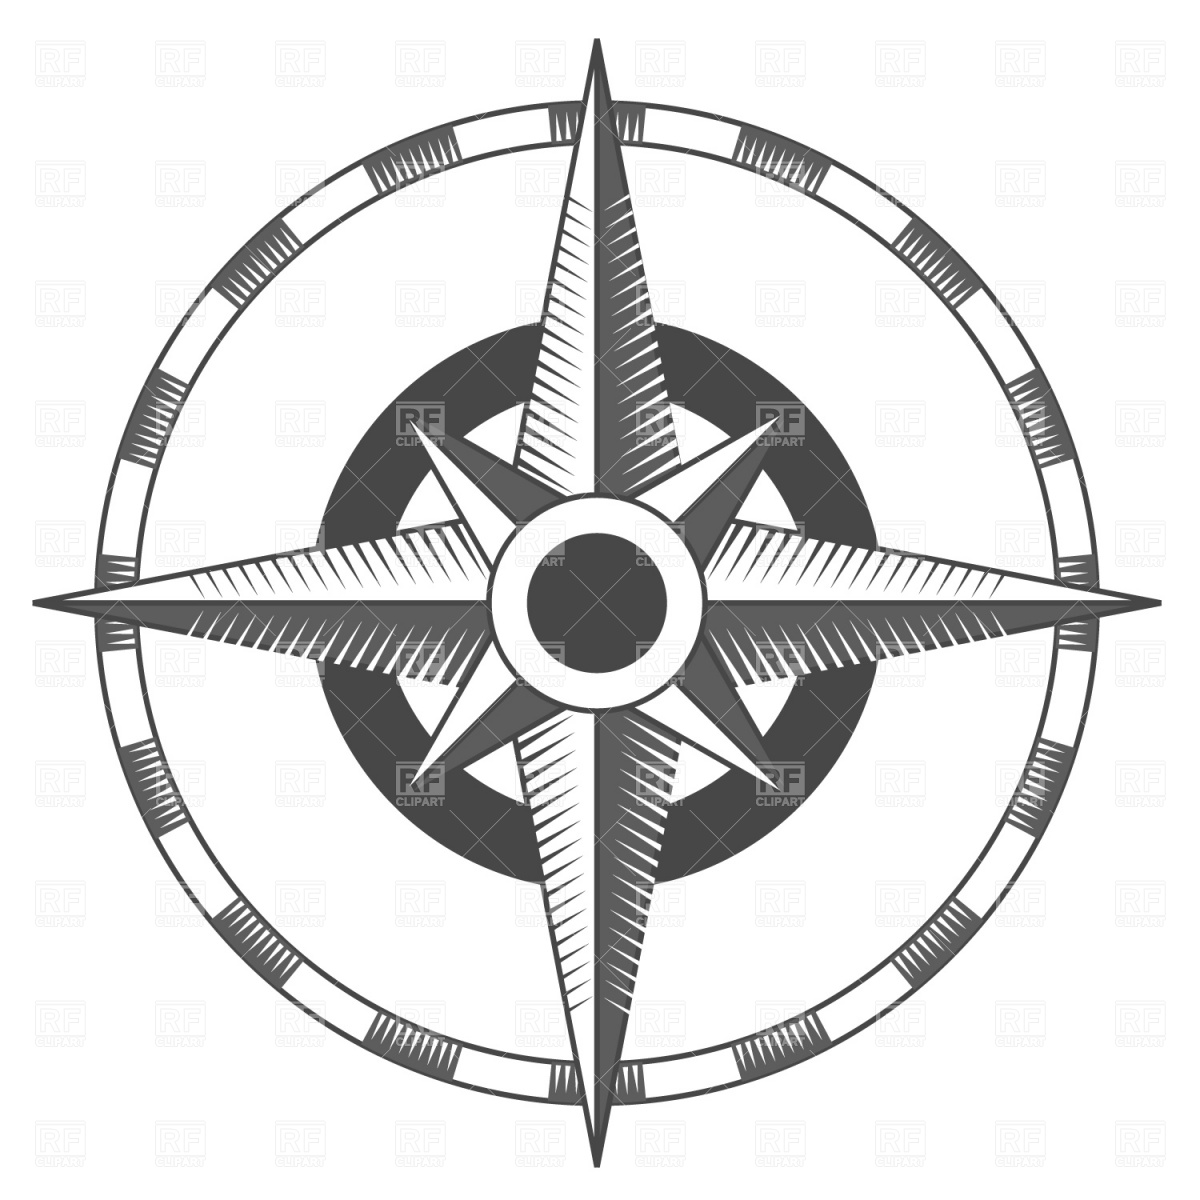 1200x1200 Vintage Compass Rose Vector Image Vector Artwork Of Signs